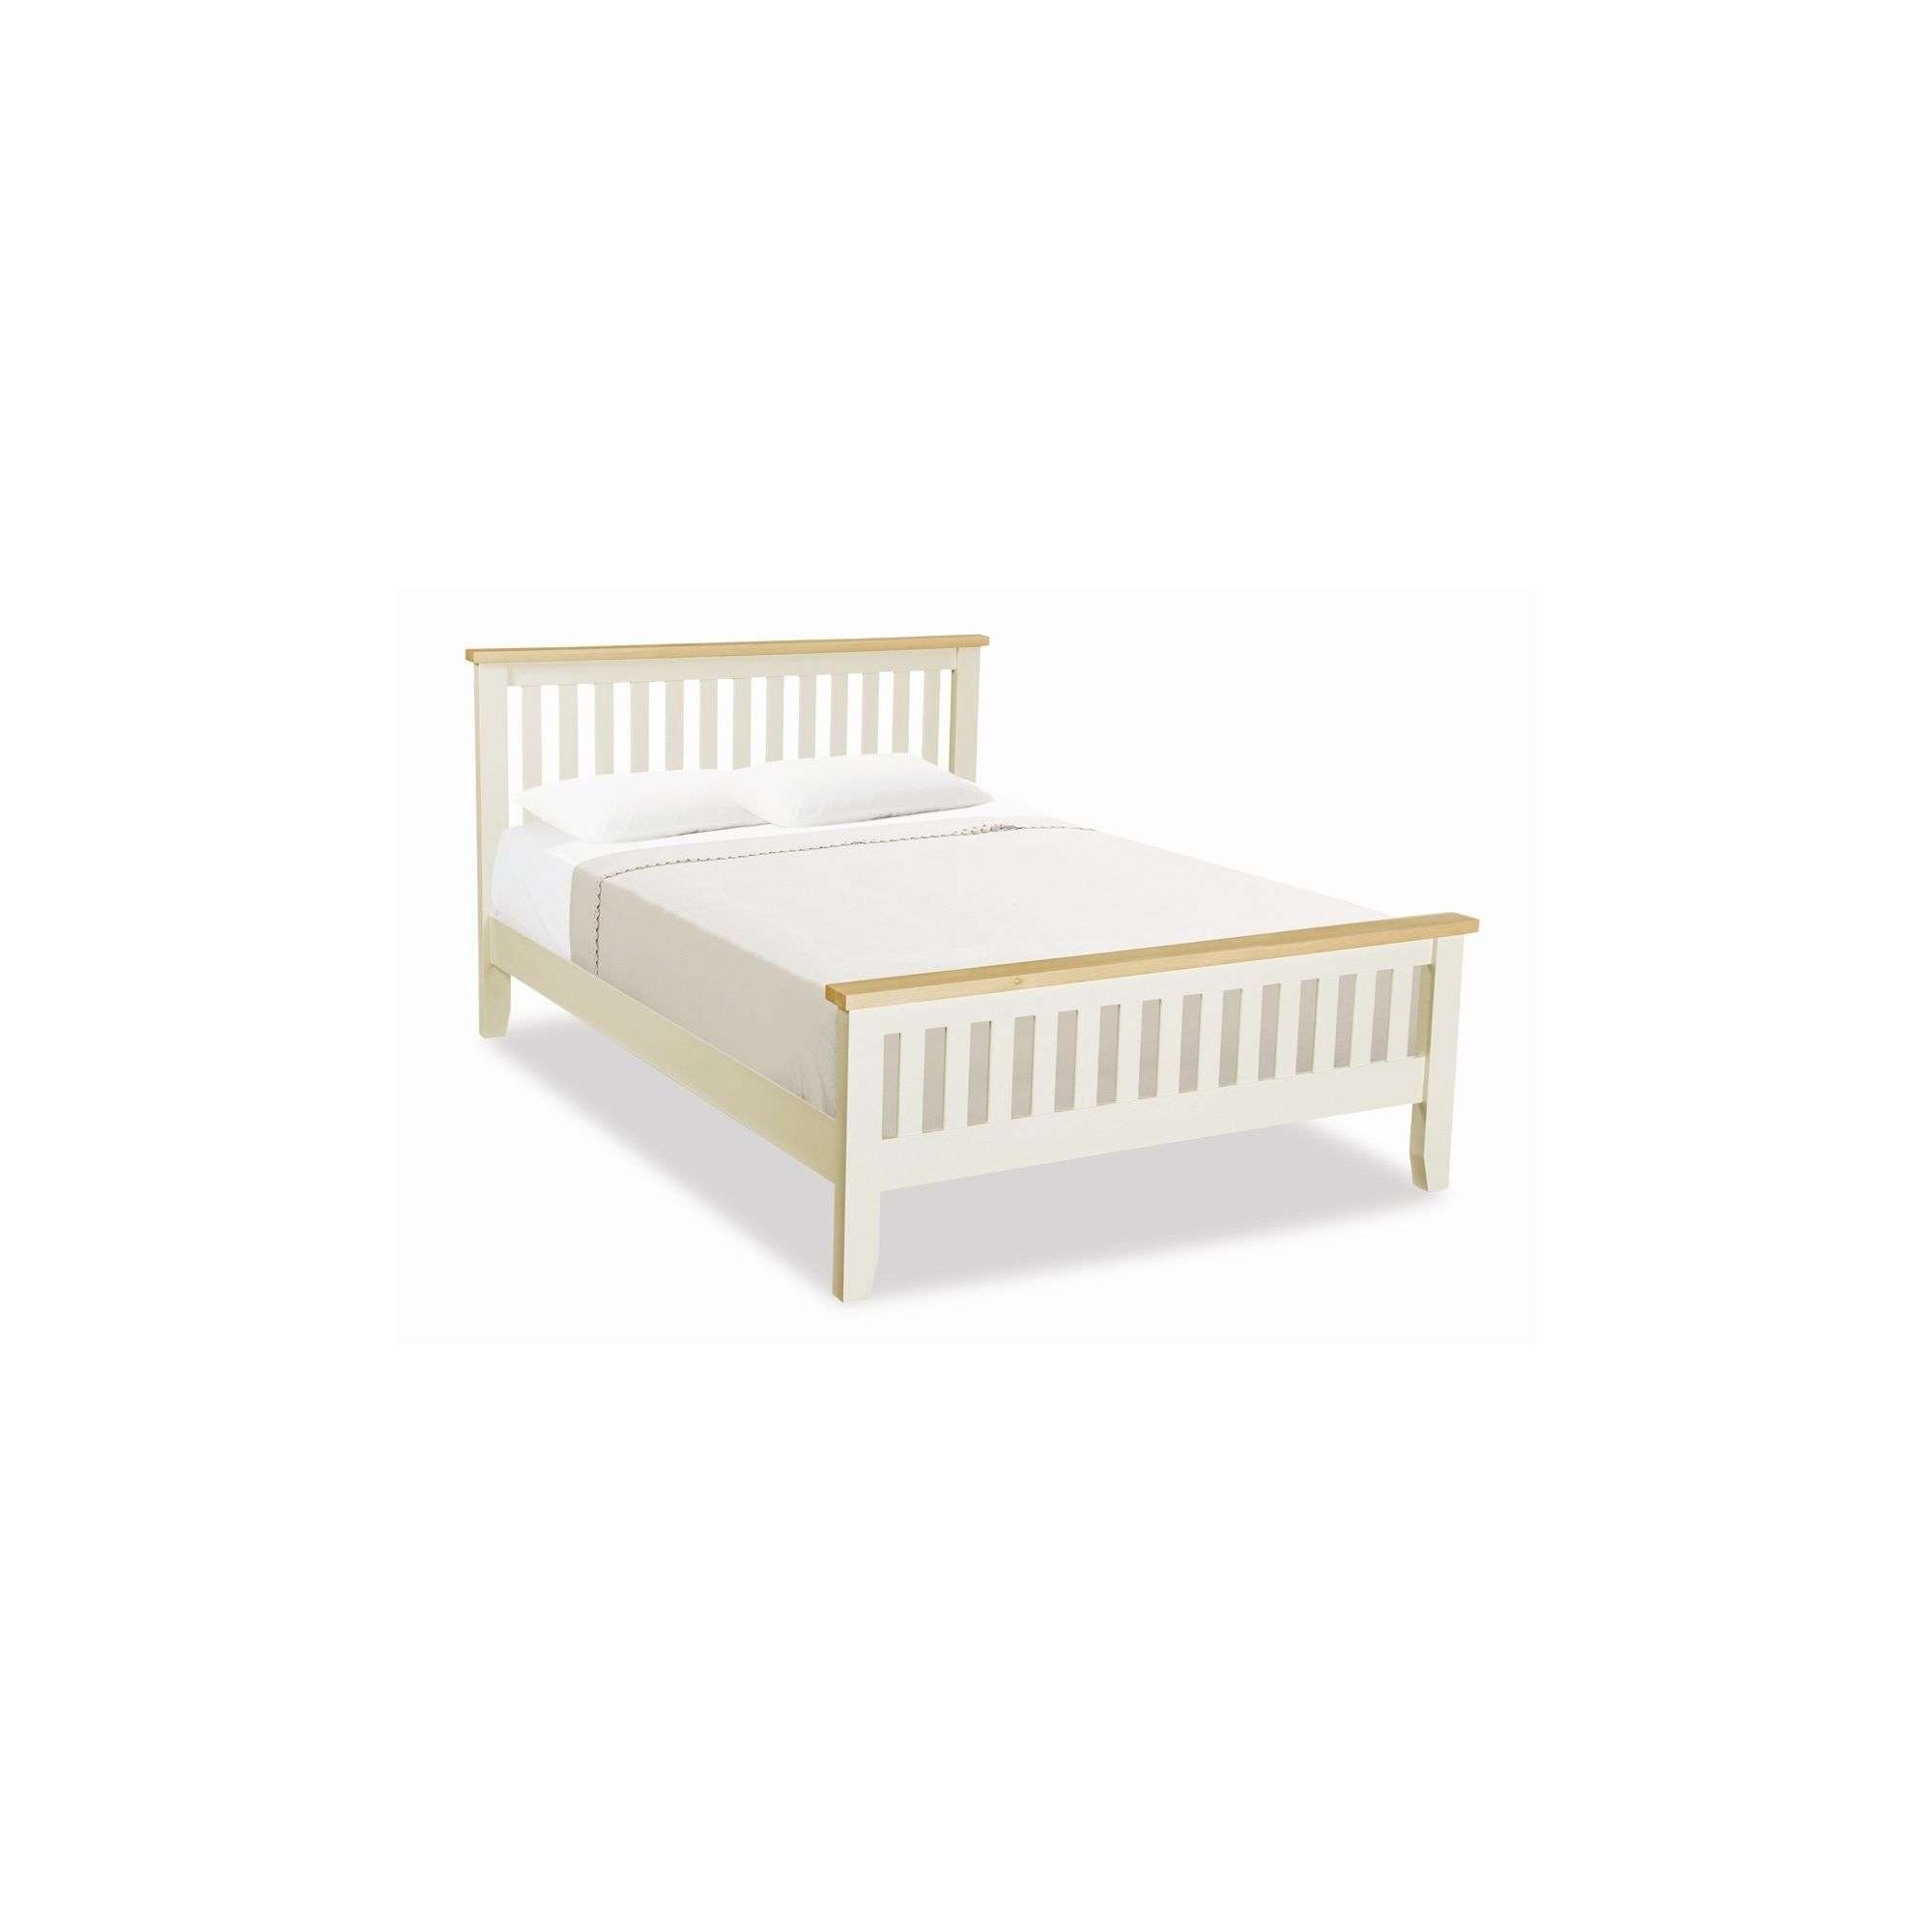 Alterton Furniture St. Ives King Size Bed at Tesco Direct